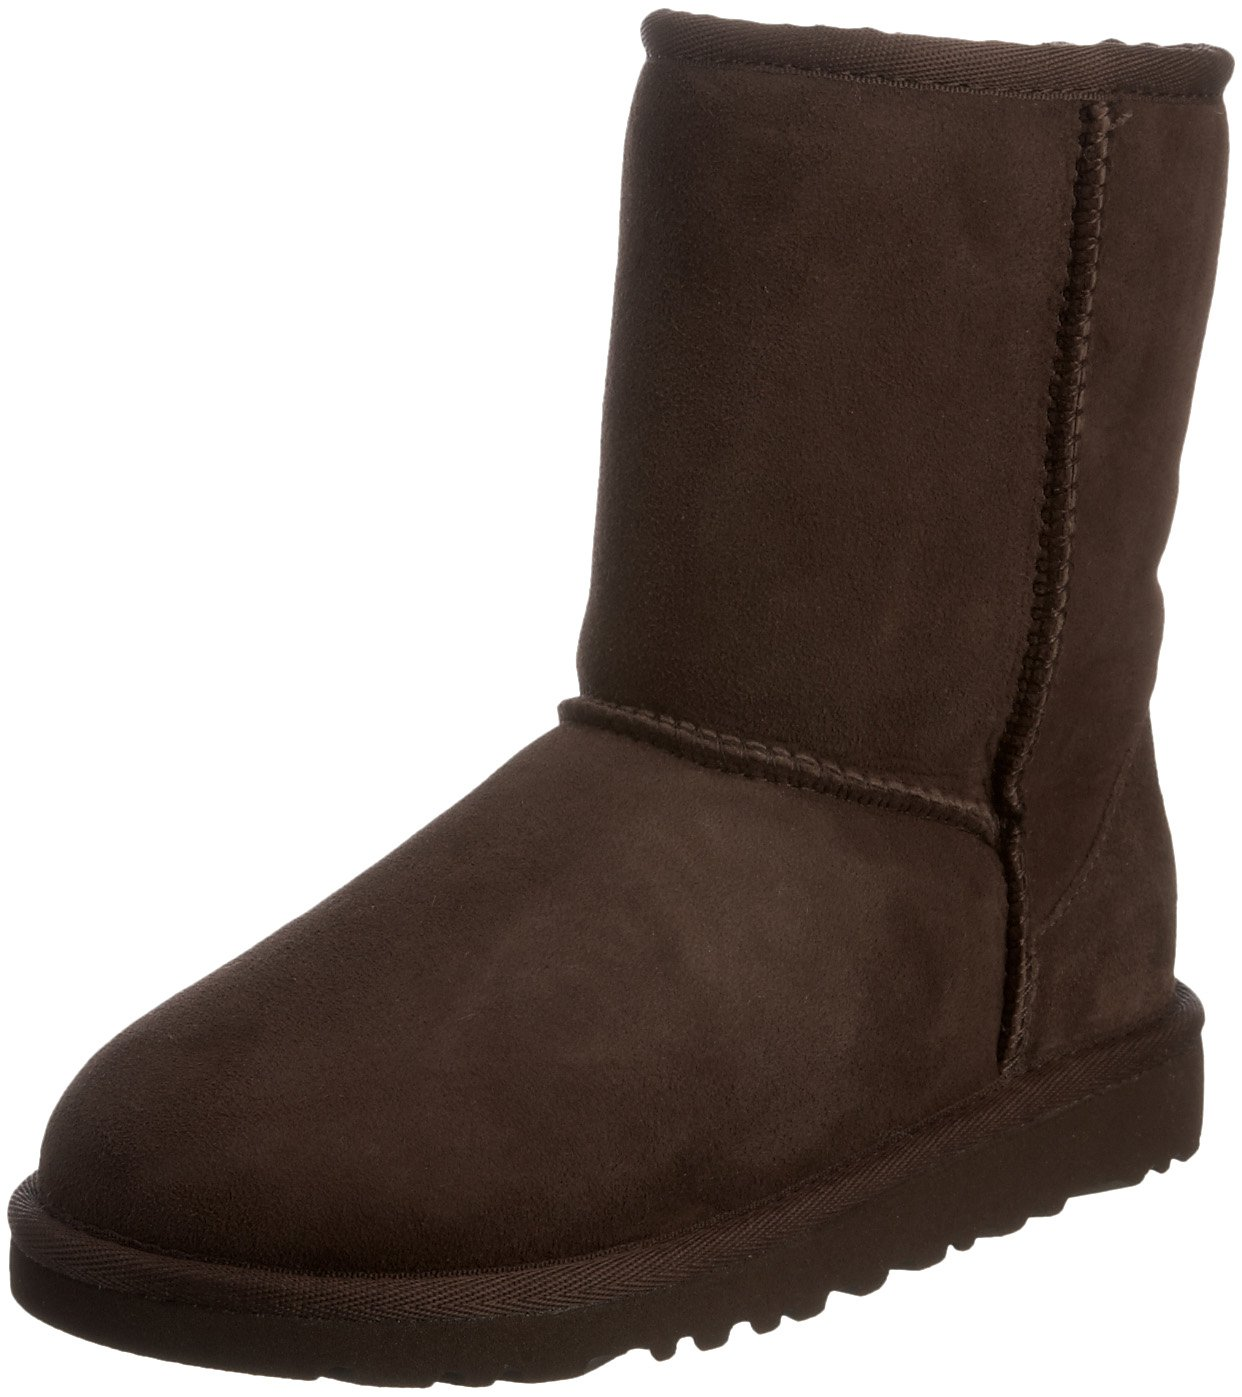 UGG Classic (Toddler/Little Kid), Chocolate, 6 M